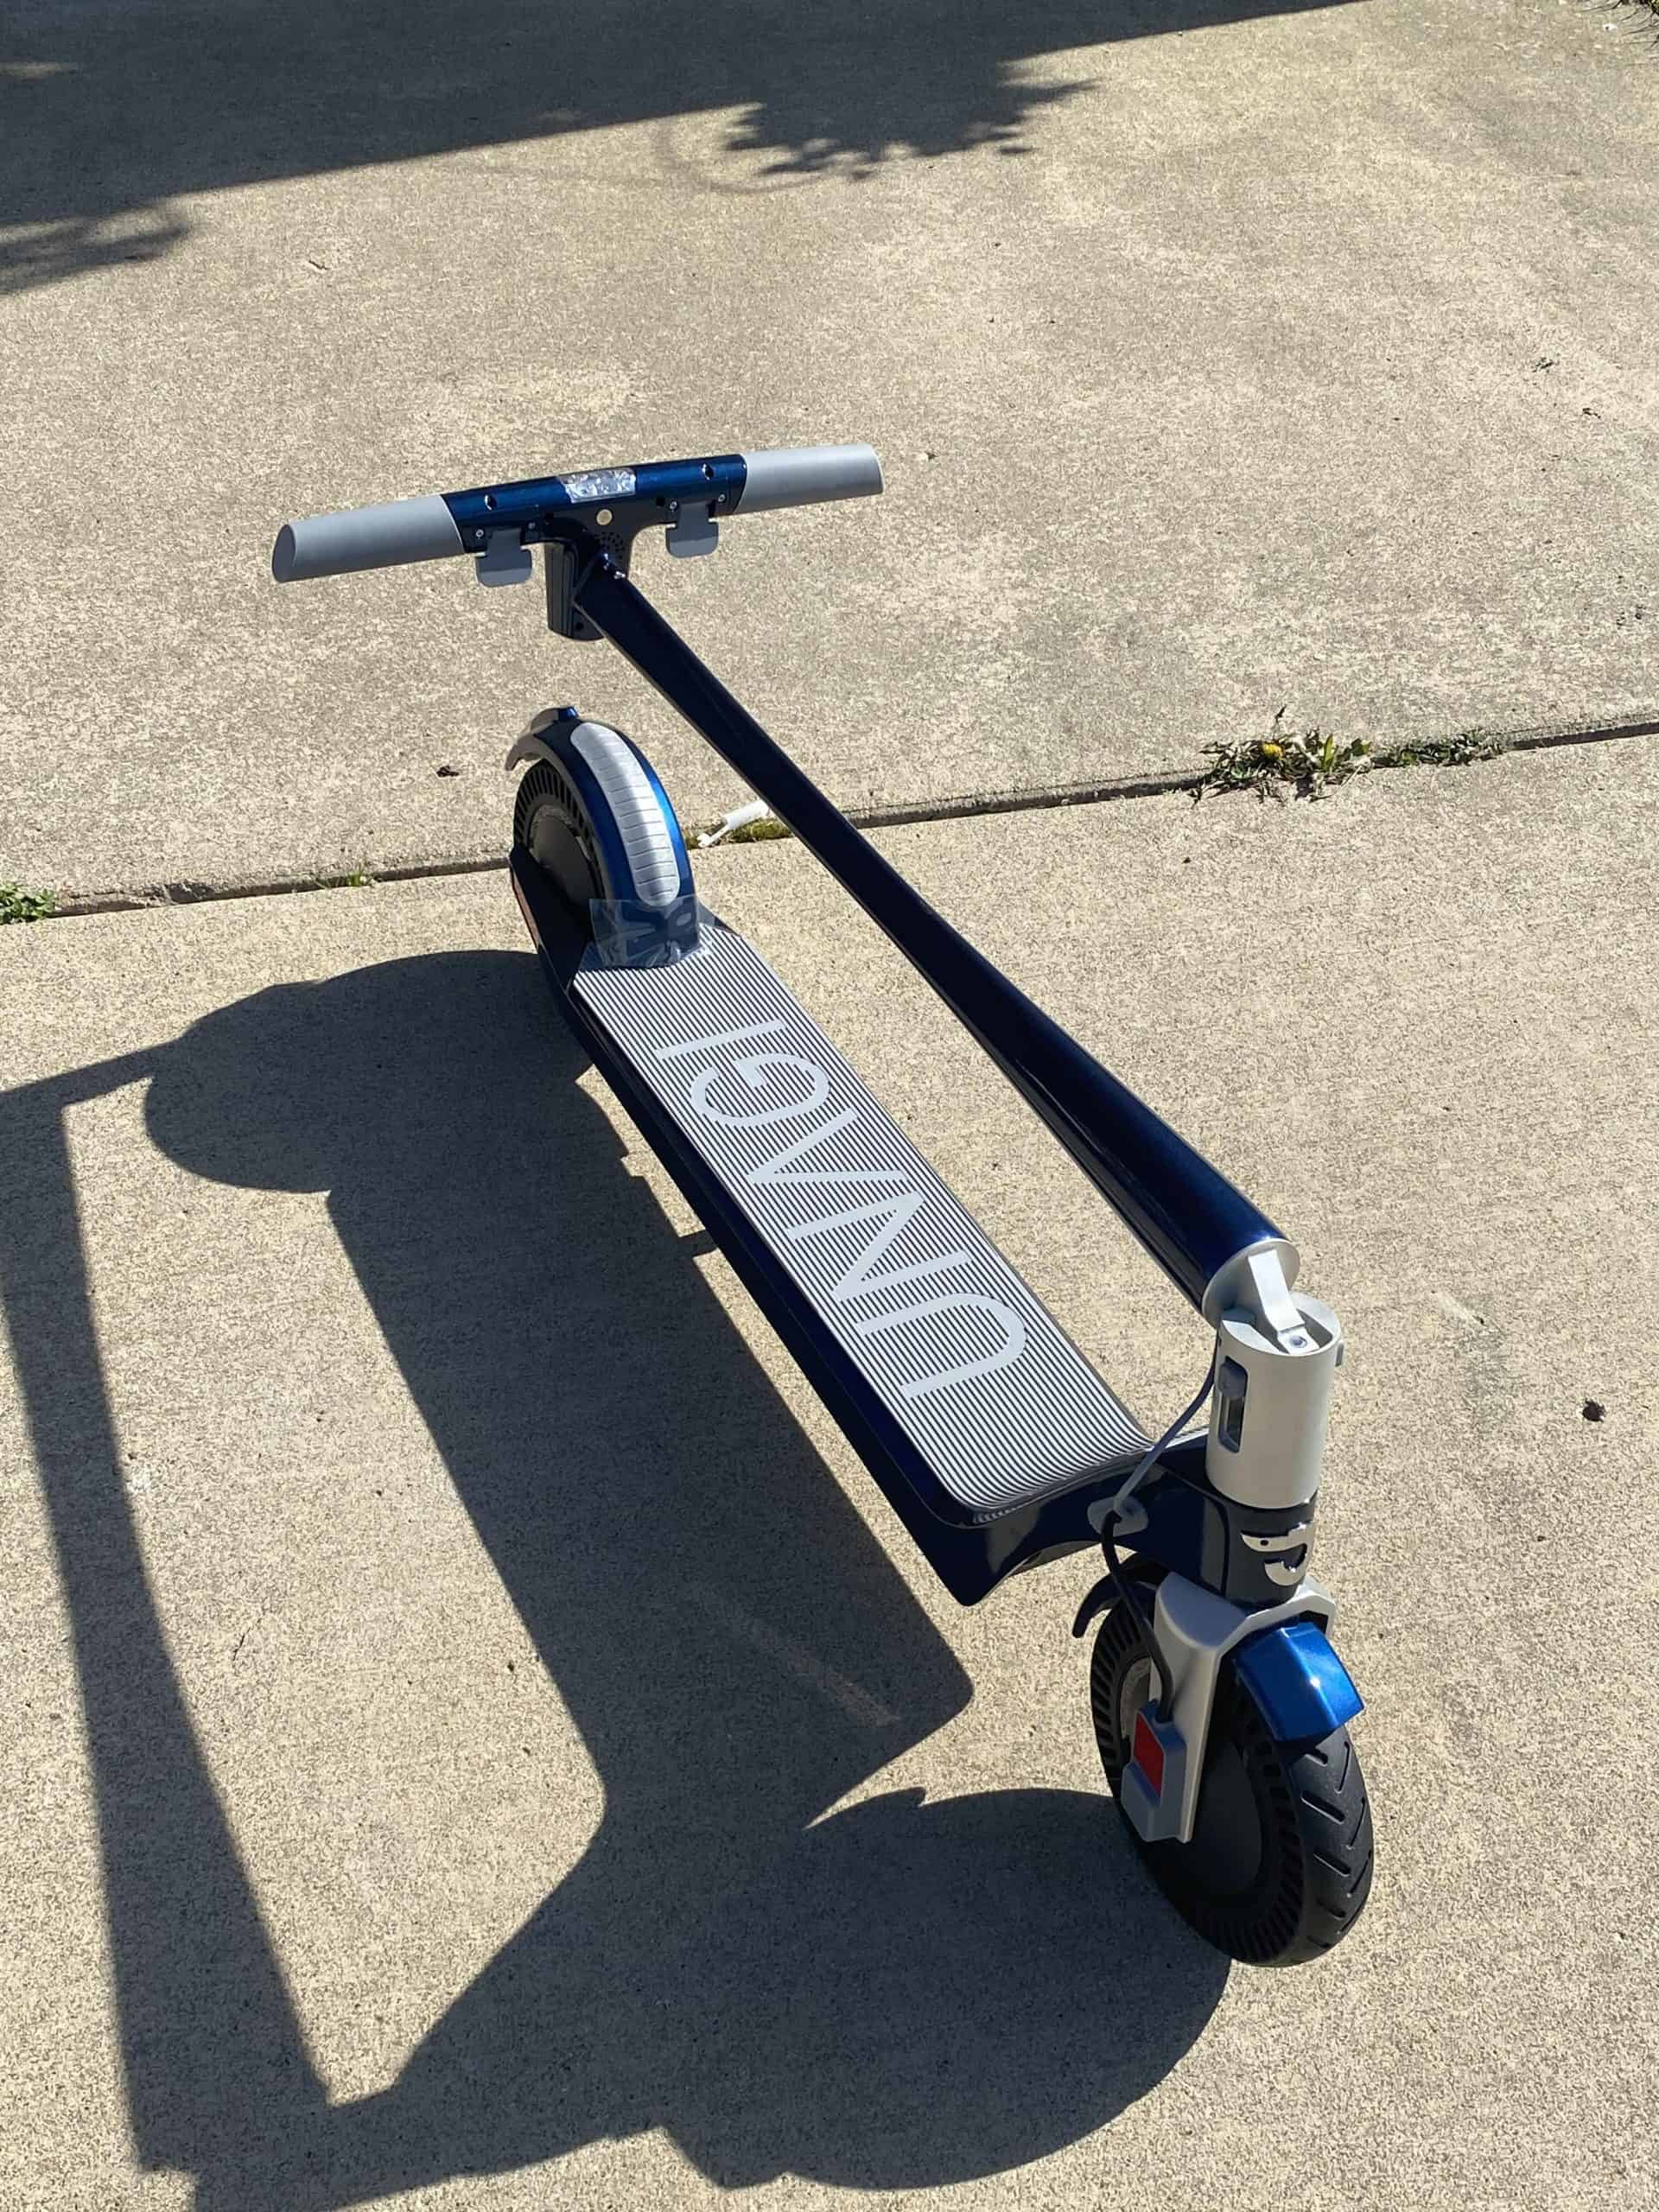 Unagi Electric Scooter Review – The Model One E500 1